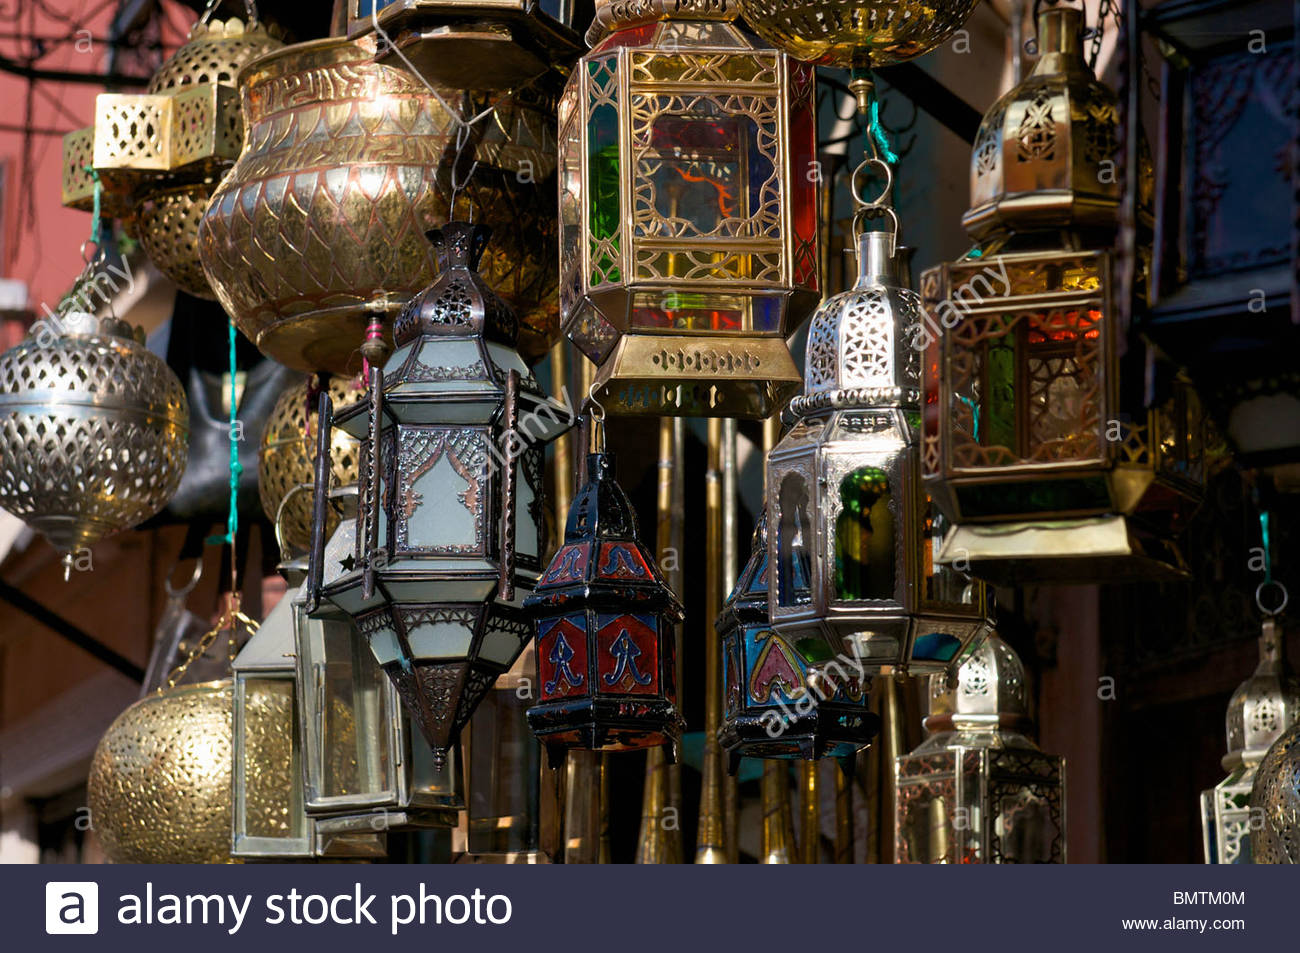 Metalware Stock Photos & Metalware Stock Images - Alamy